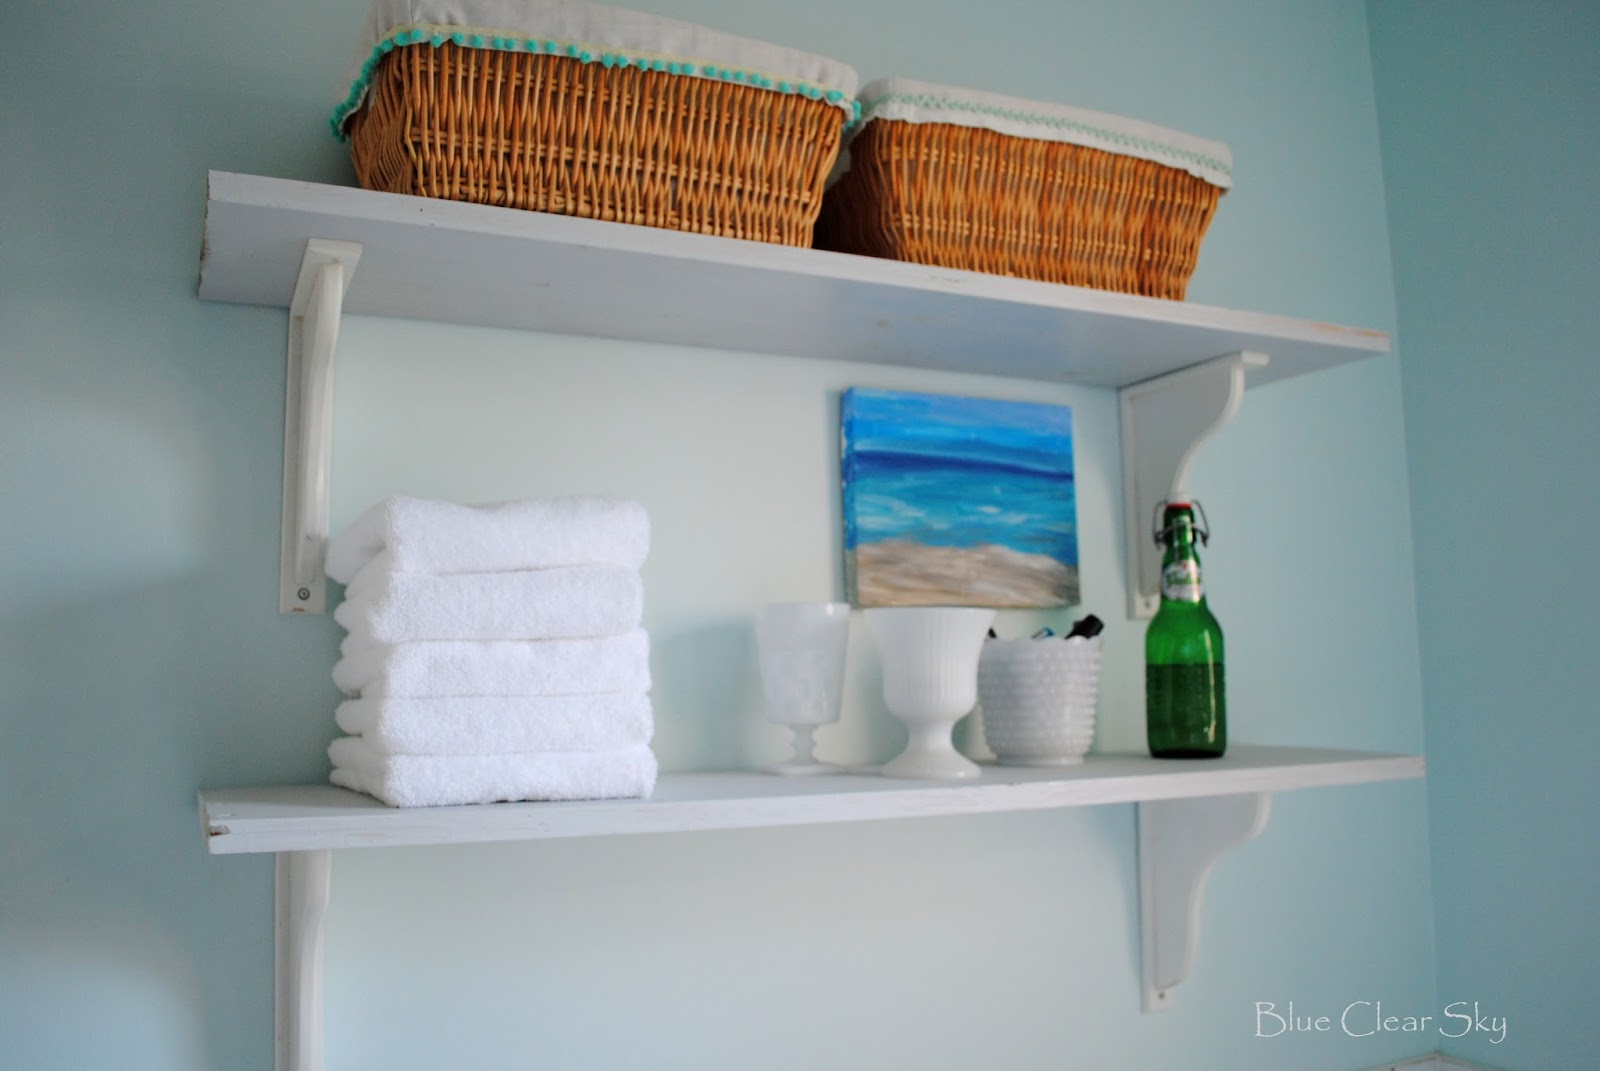 26 Model Simple Bathroom Shelves | eyagci.com